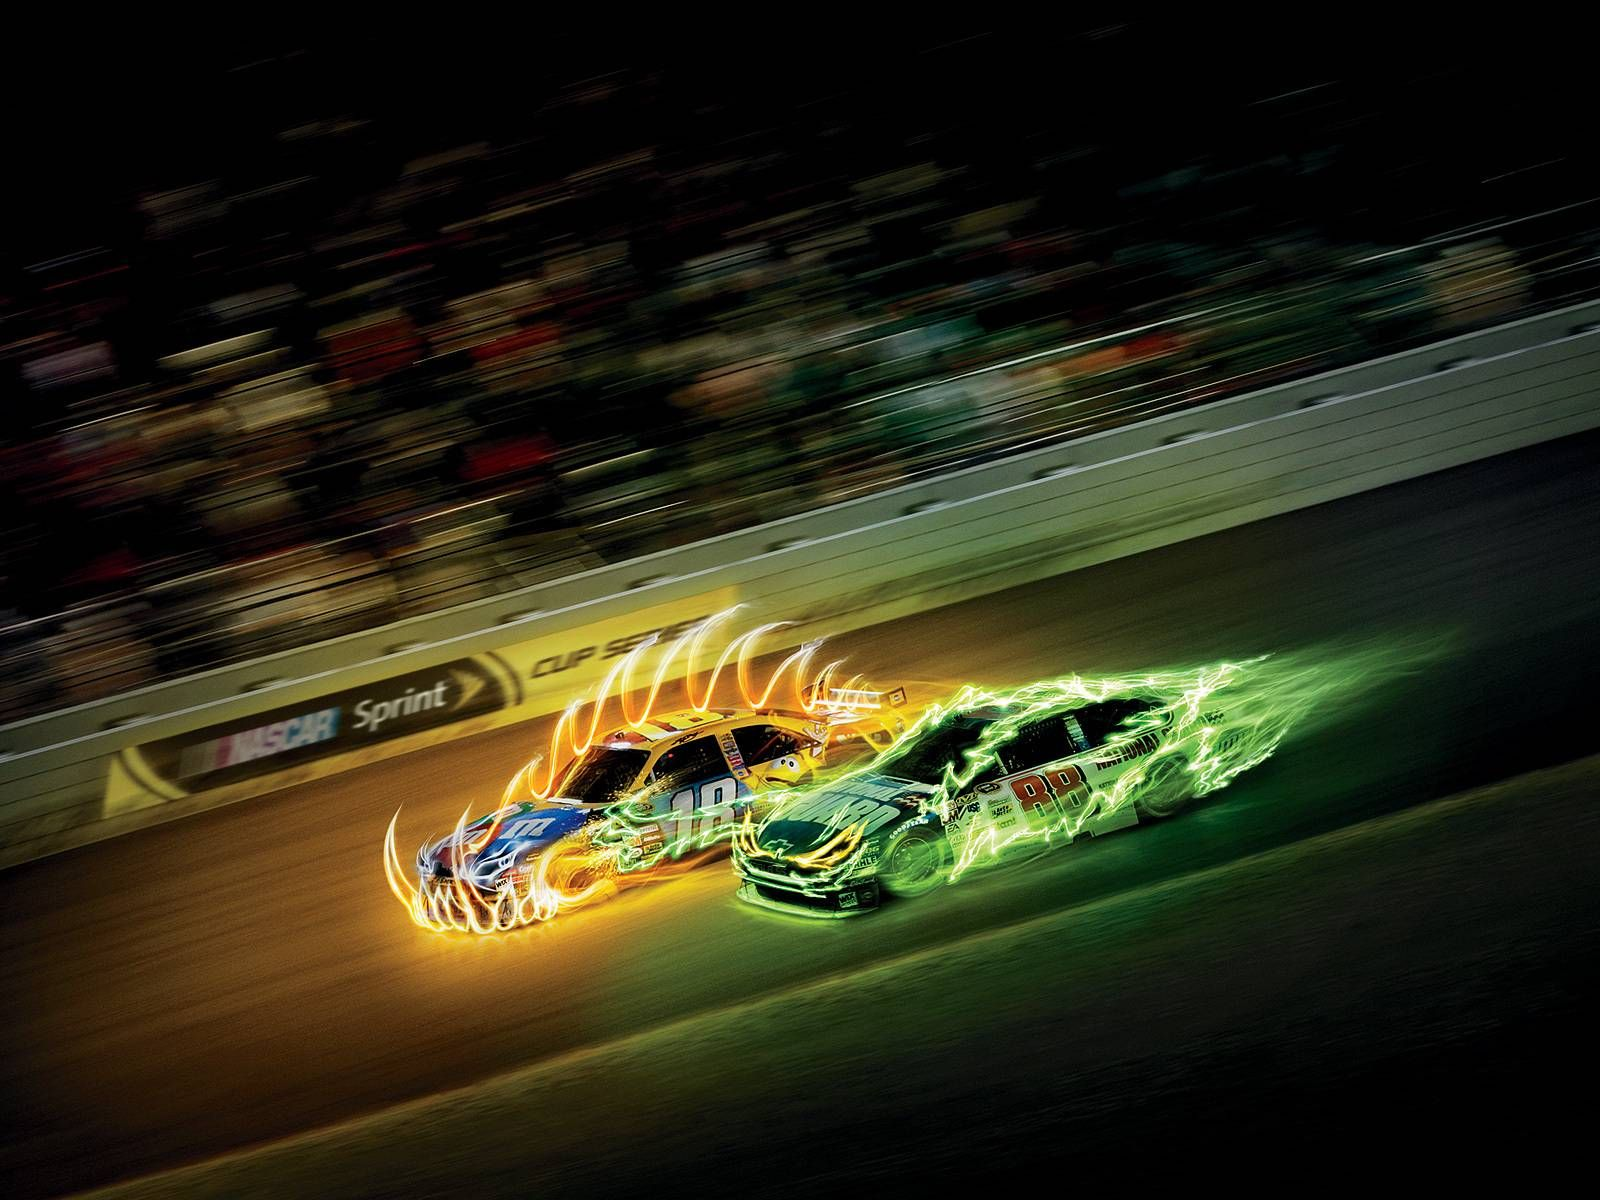 Nascar Wallpapers Hd Na App Store Adorable Wallpapers Pinterest